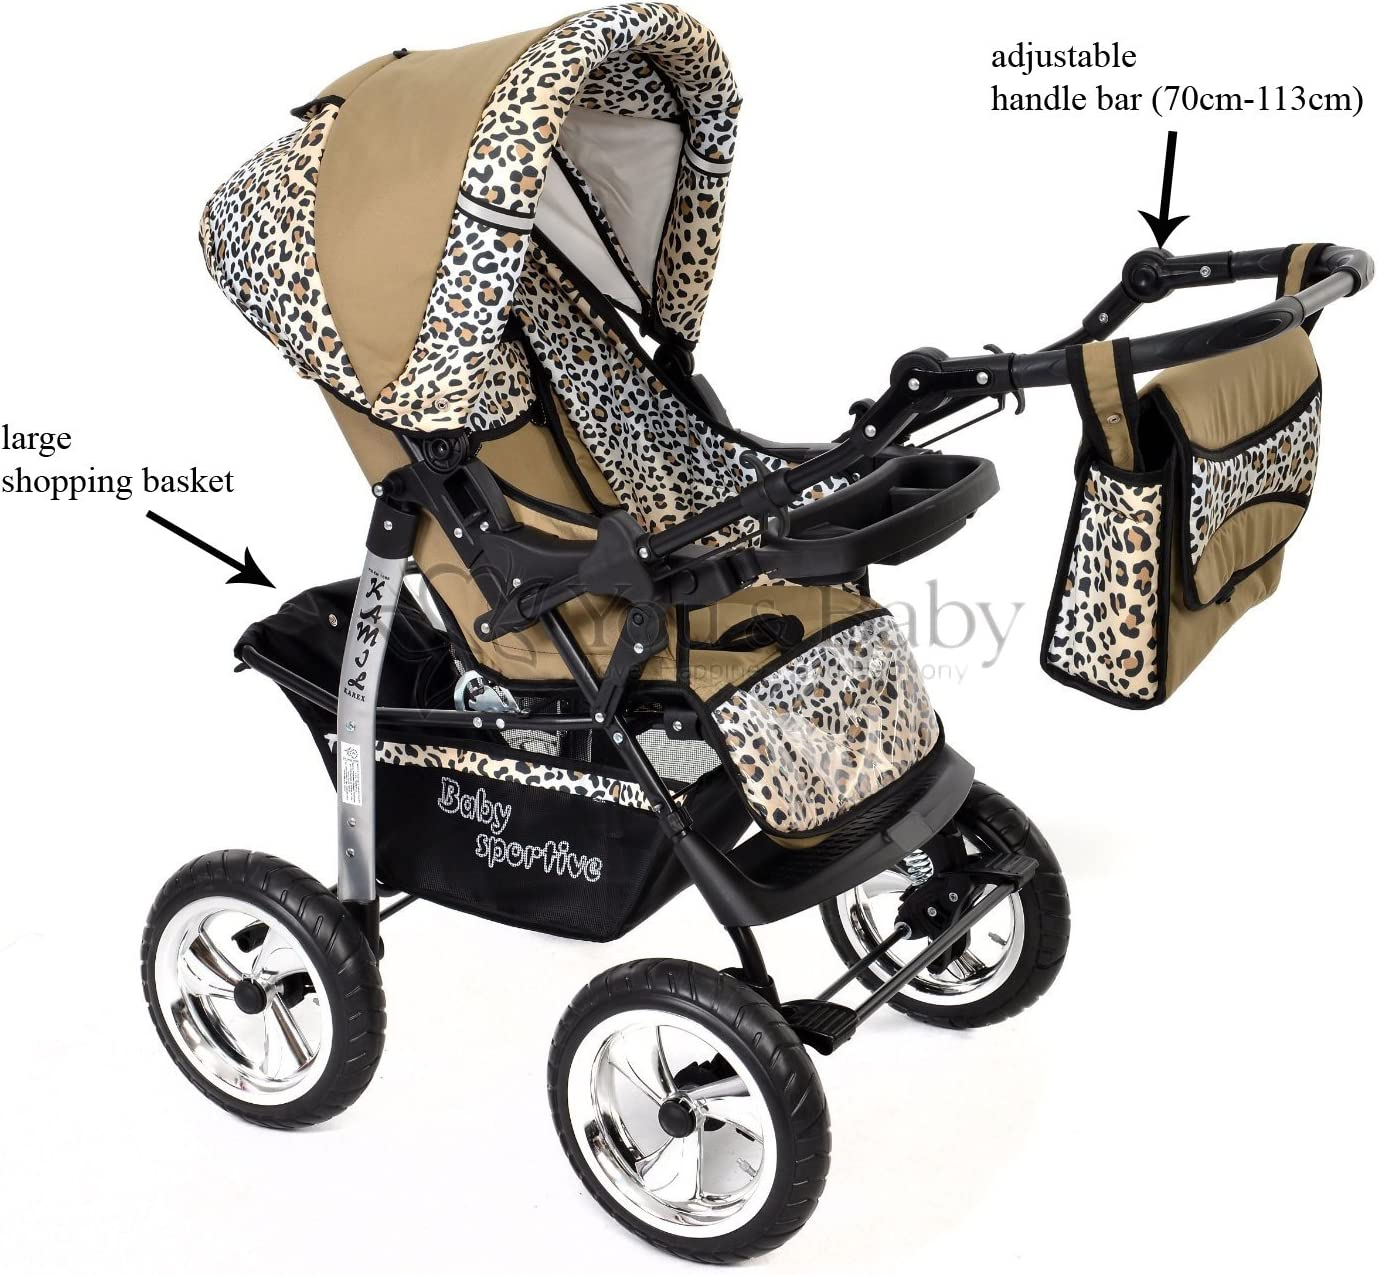 Pushchair /& Accessories Kamil Car Seat 3-in-1 Travel System, Beige /& Leopard FIXED Classic 3-in-1 Travel System with 4 STATIC WHEELS incl Baby Pram